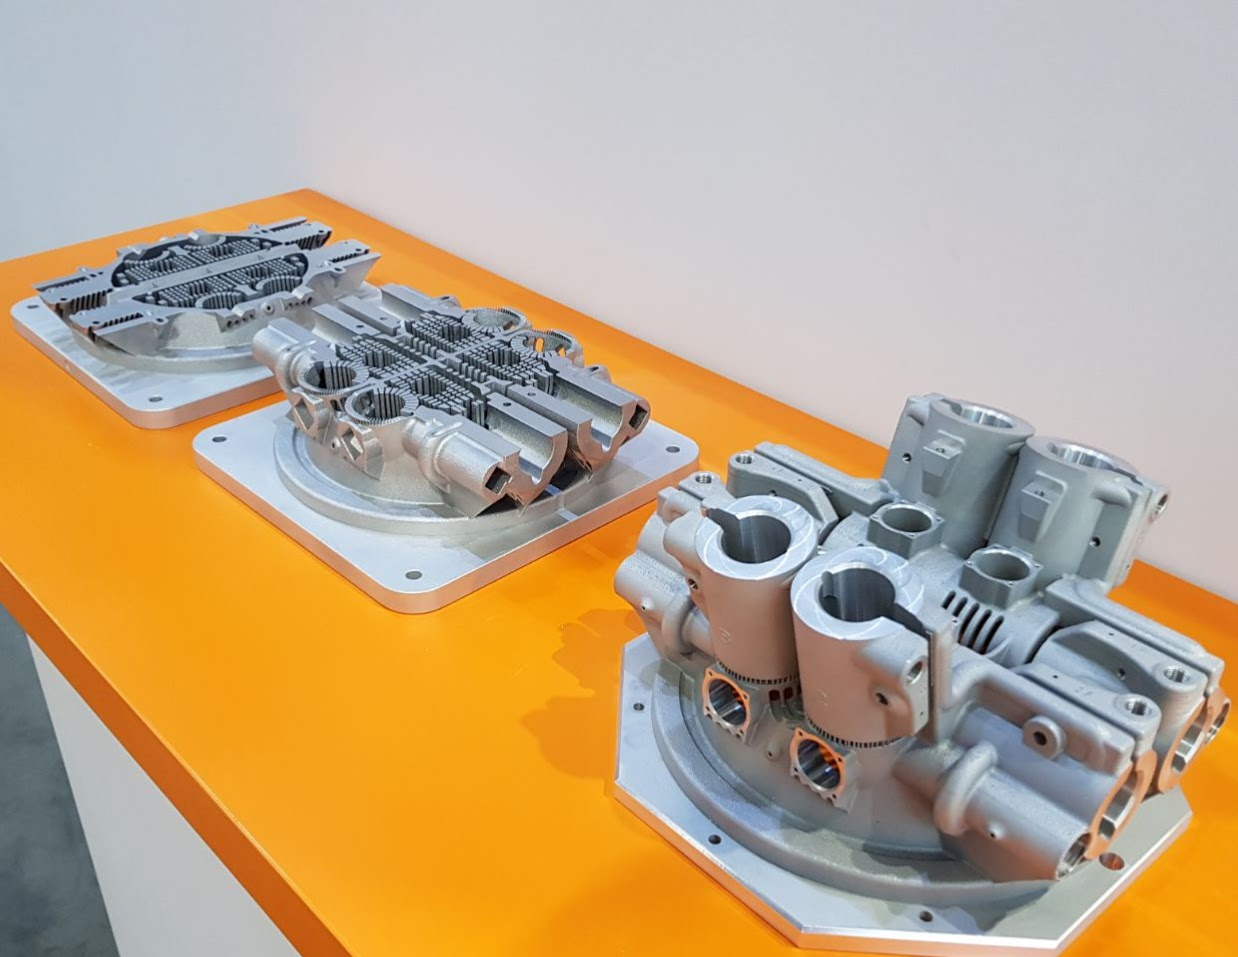 Metal additive manufactured components from the Renishaw RENAM 500Q. Photo by Michael Petch.